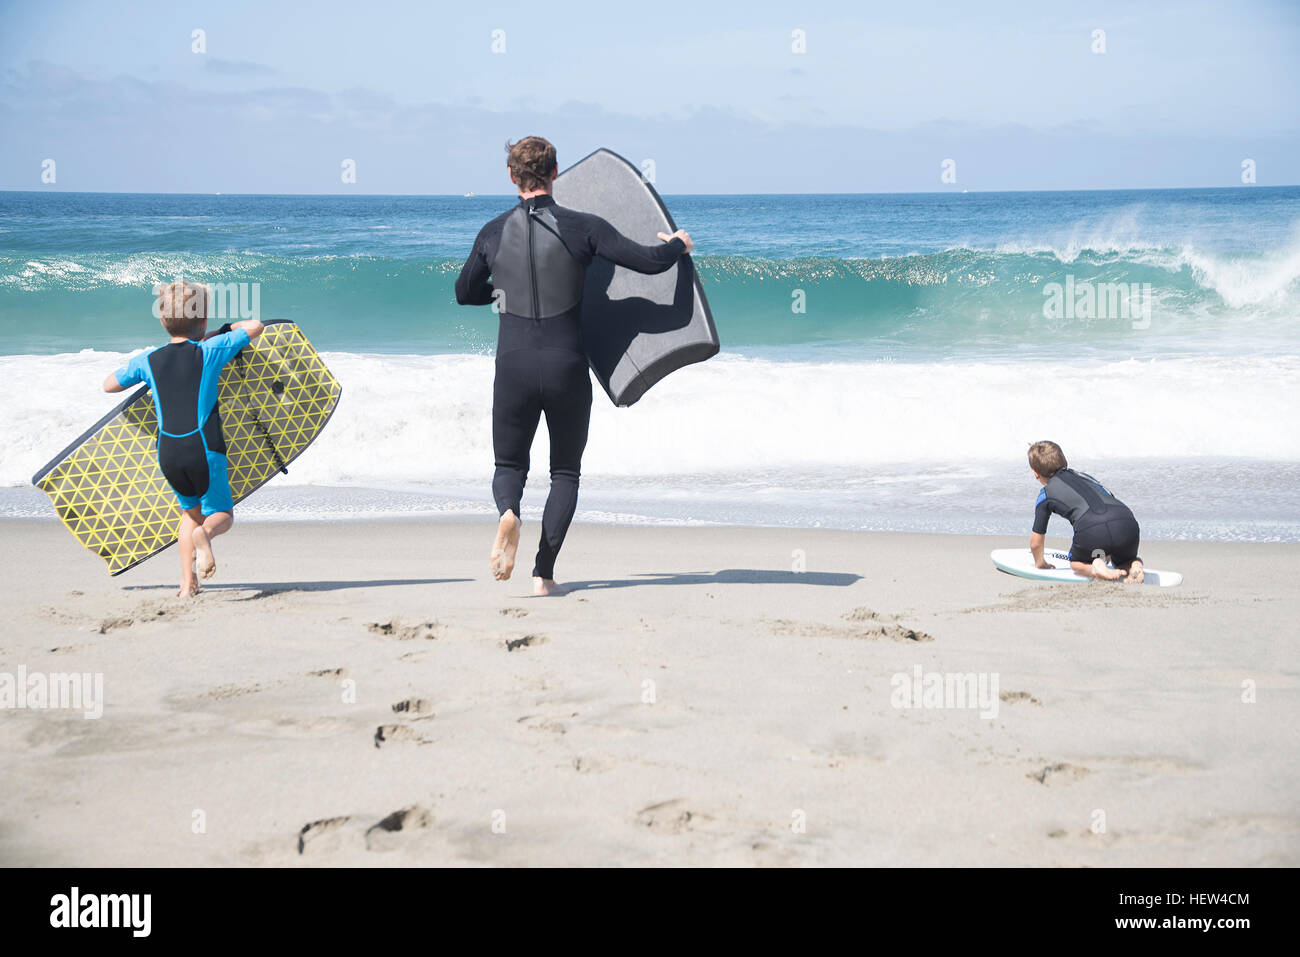 Rear view of father and two sons running with bodyboards on beach, Laguna Beach, California, USA Stock Photo